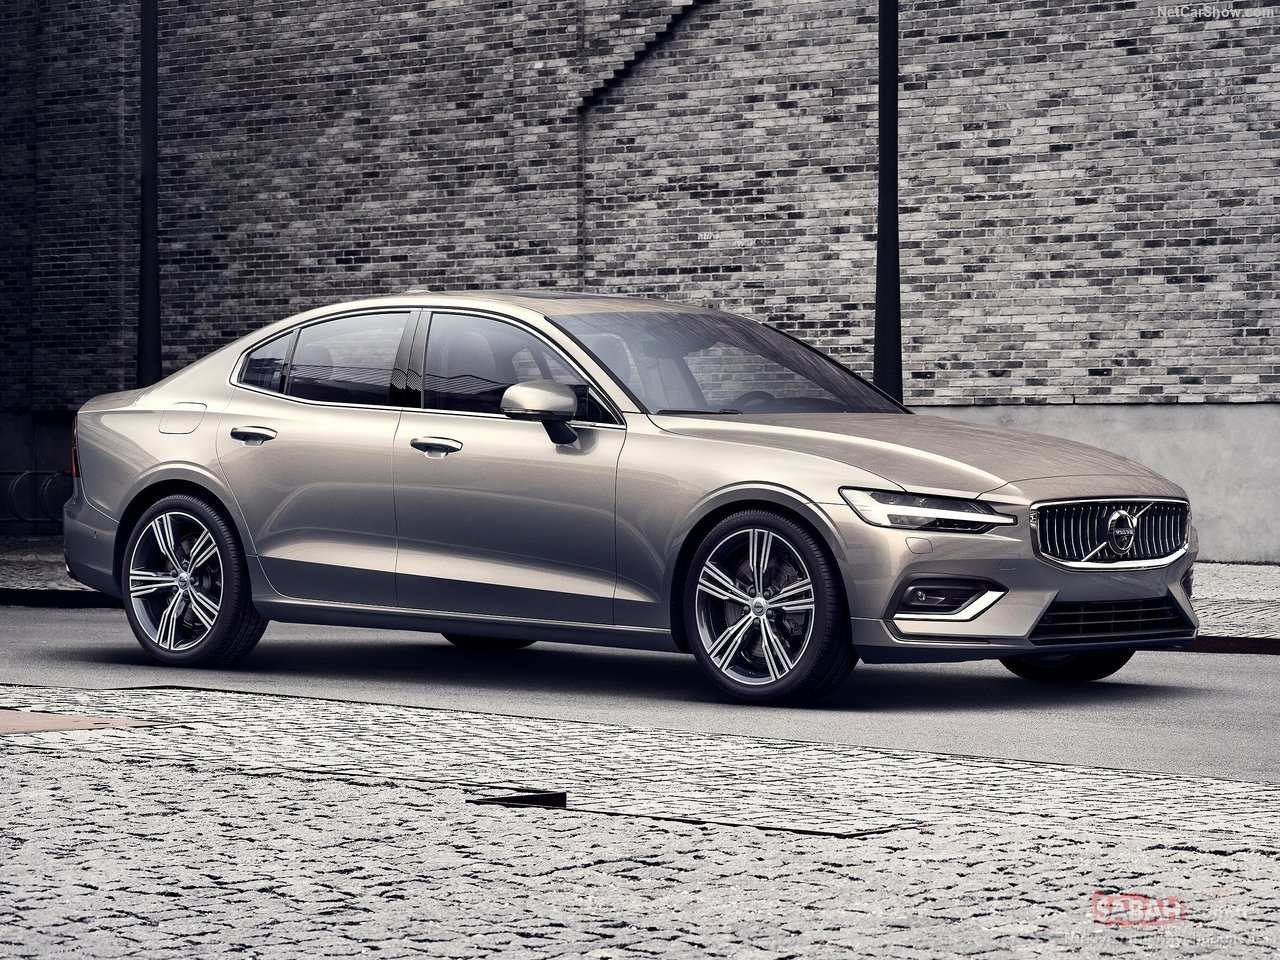 40 New Volvo S60 2019 Hybrid Specs and Review for Volvo S60 2019 Hybrid